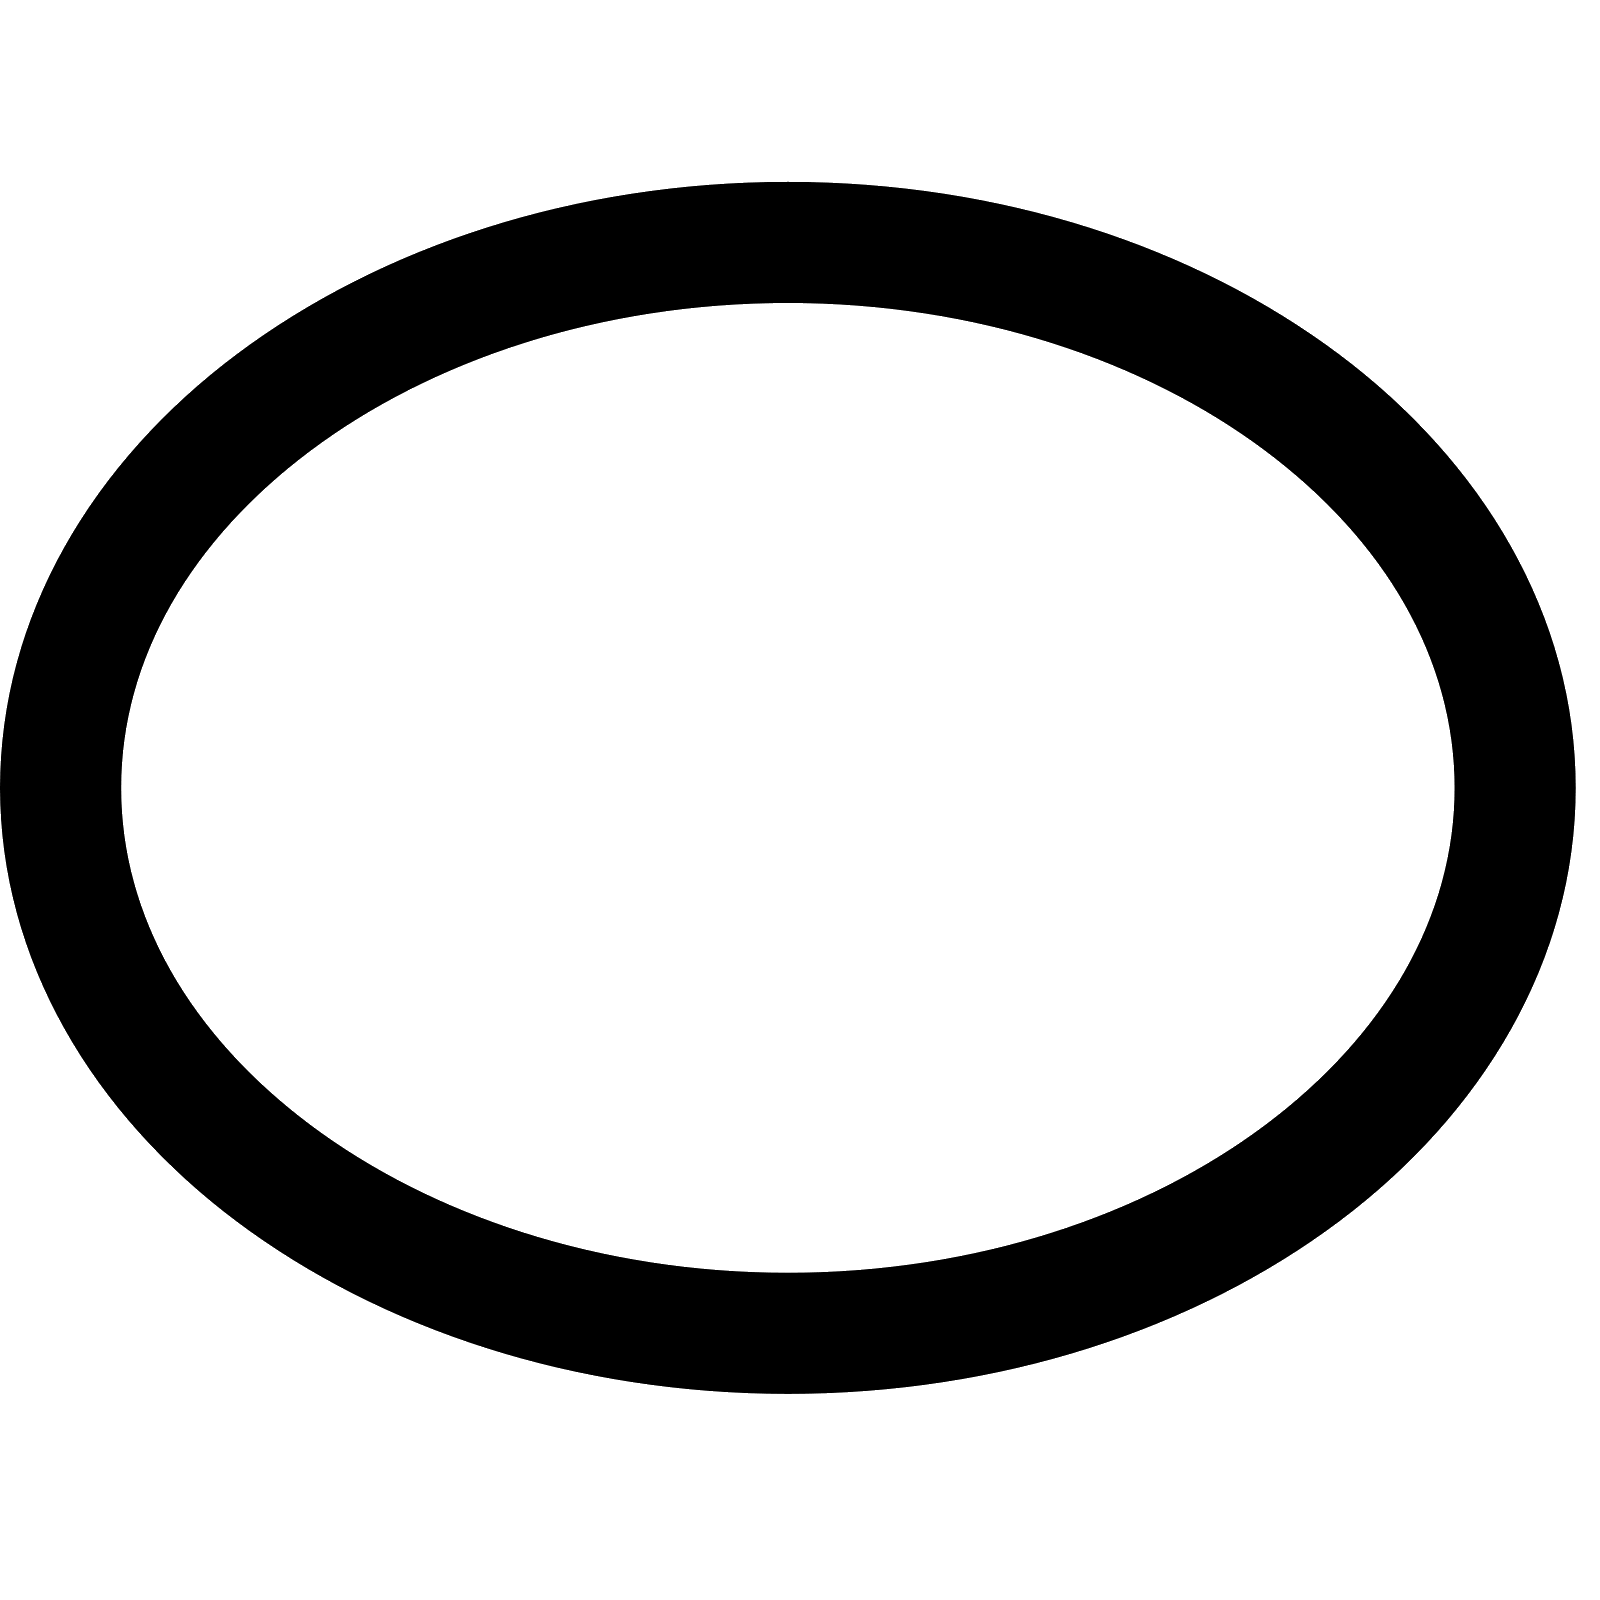 Swoop vector oval. Computer icons circle clockwise